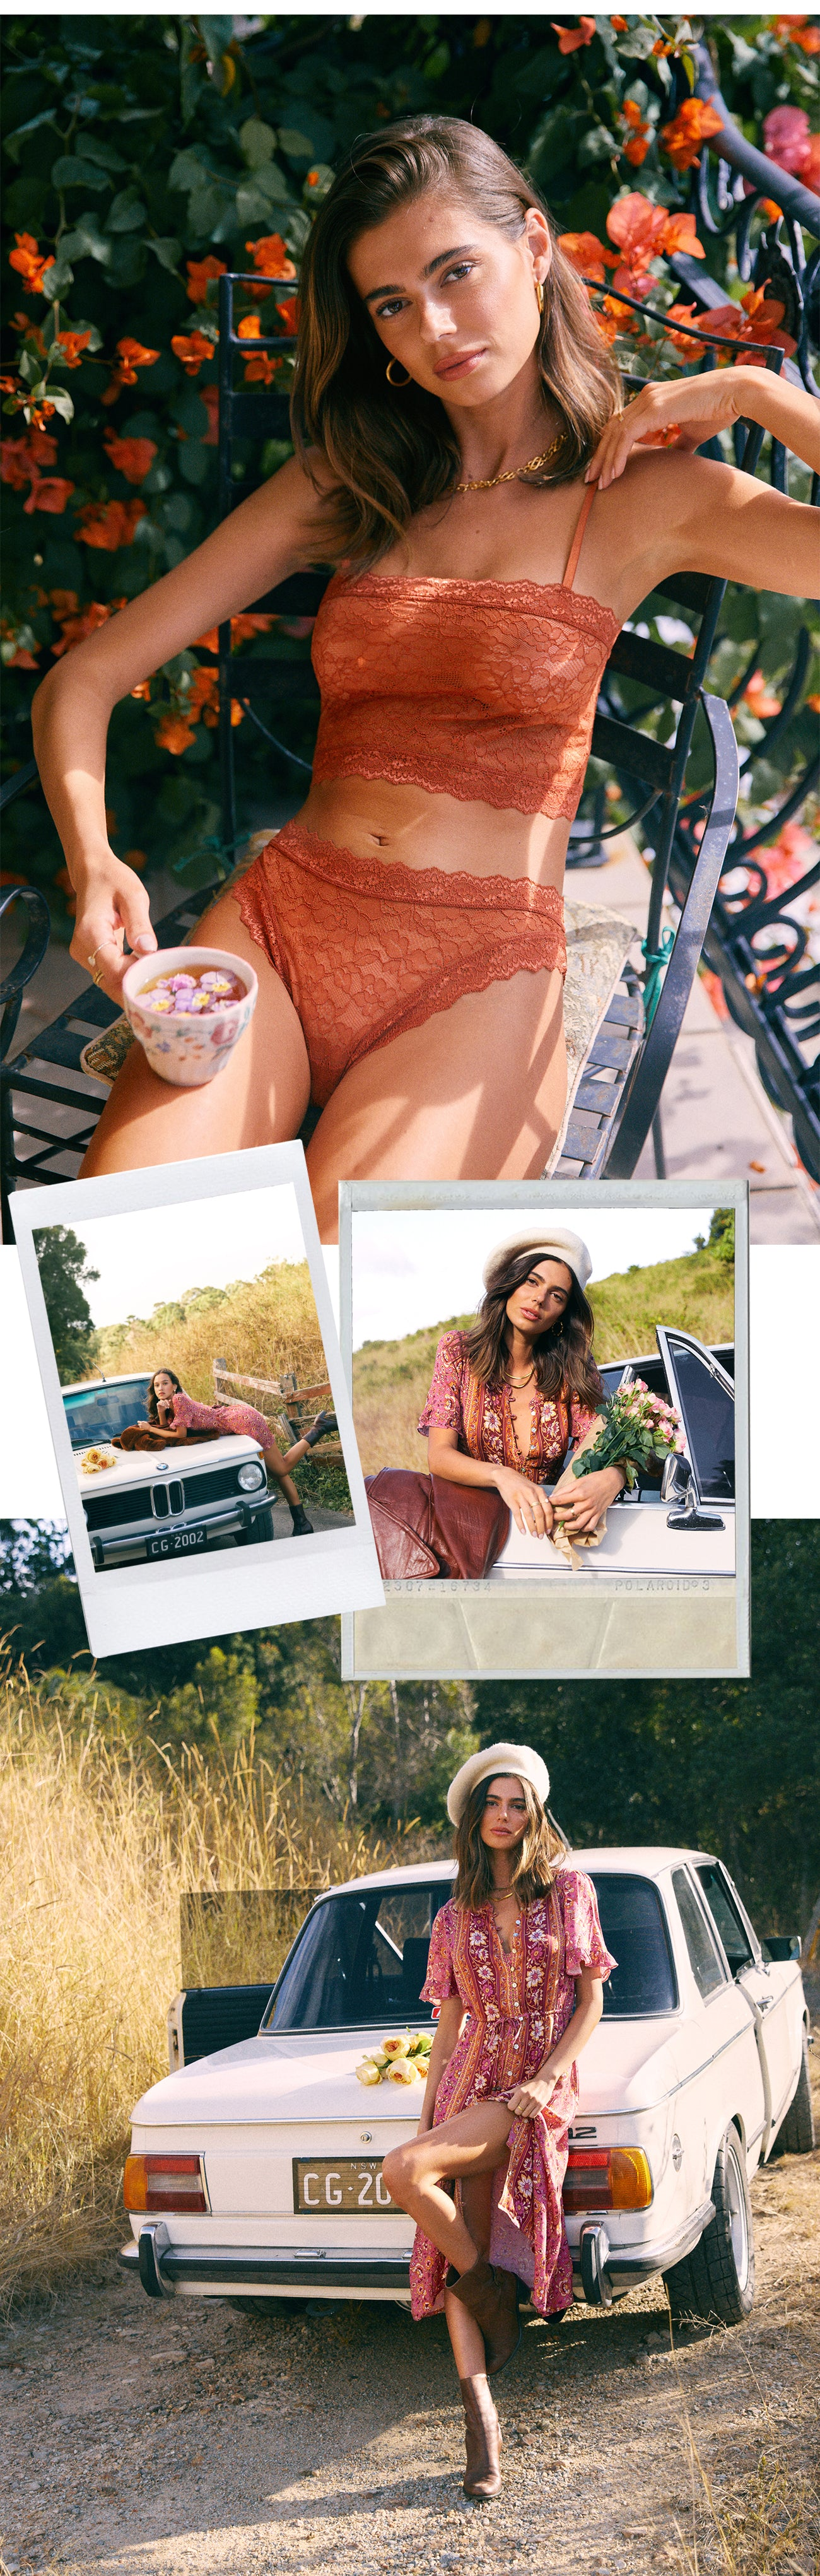 Golden Hour collection drop one offers sustainable intimates made from stretchy lace